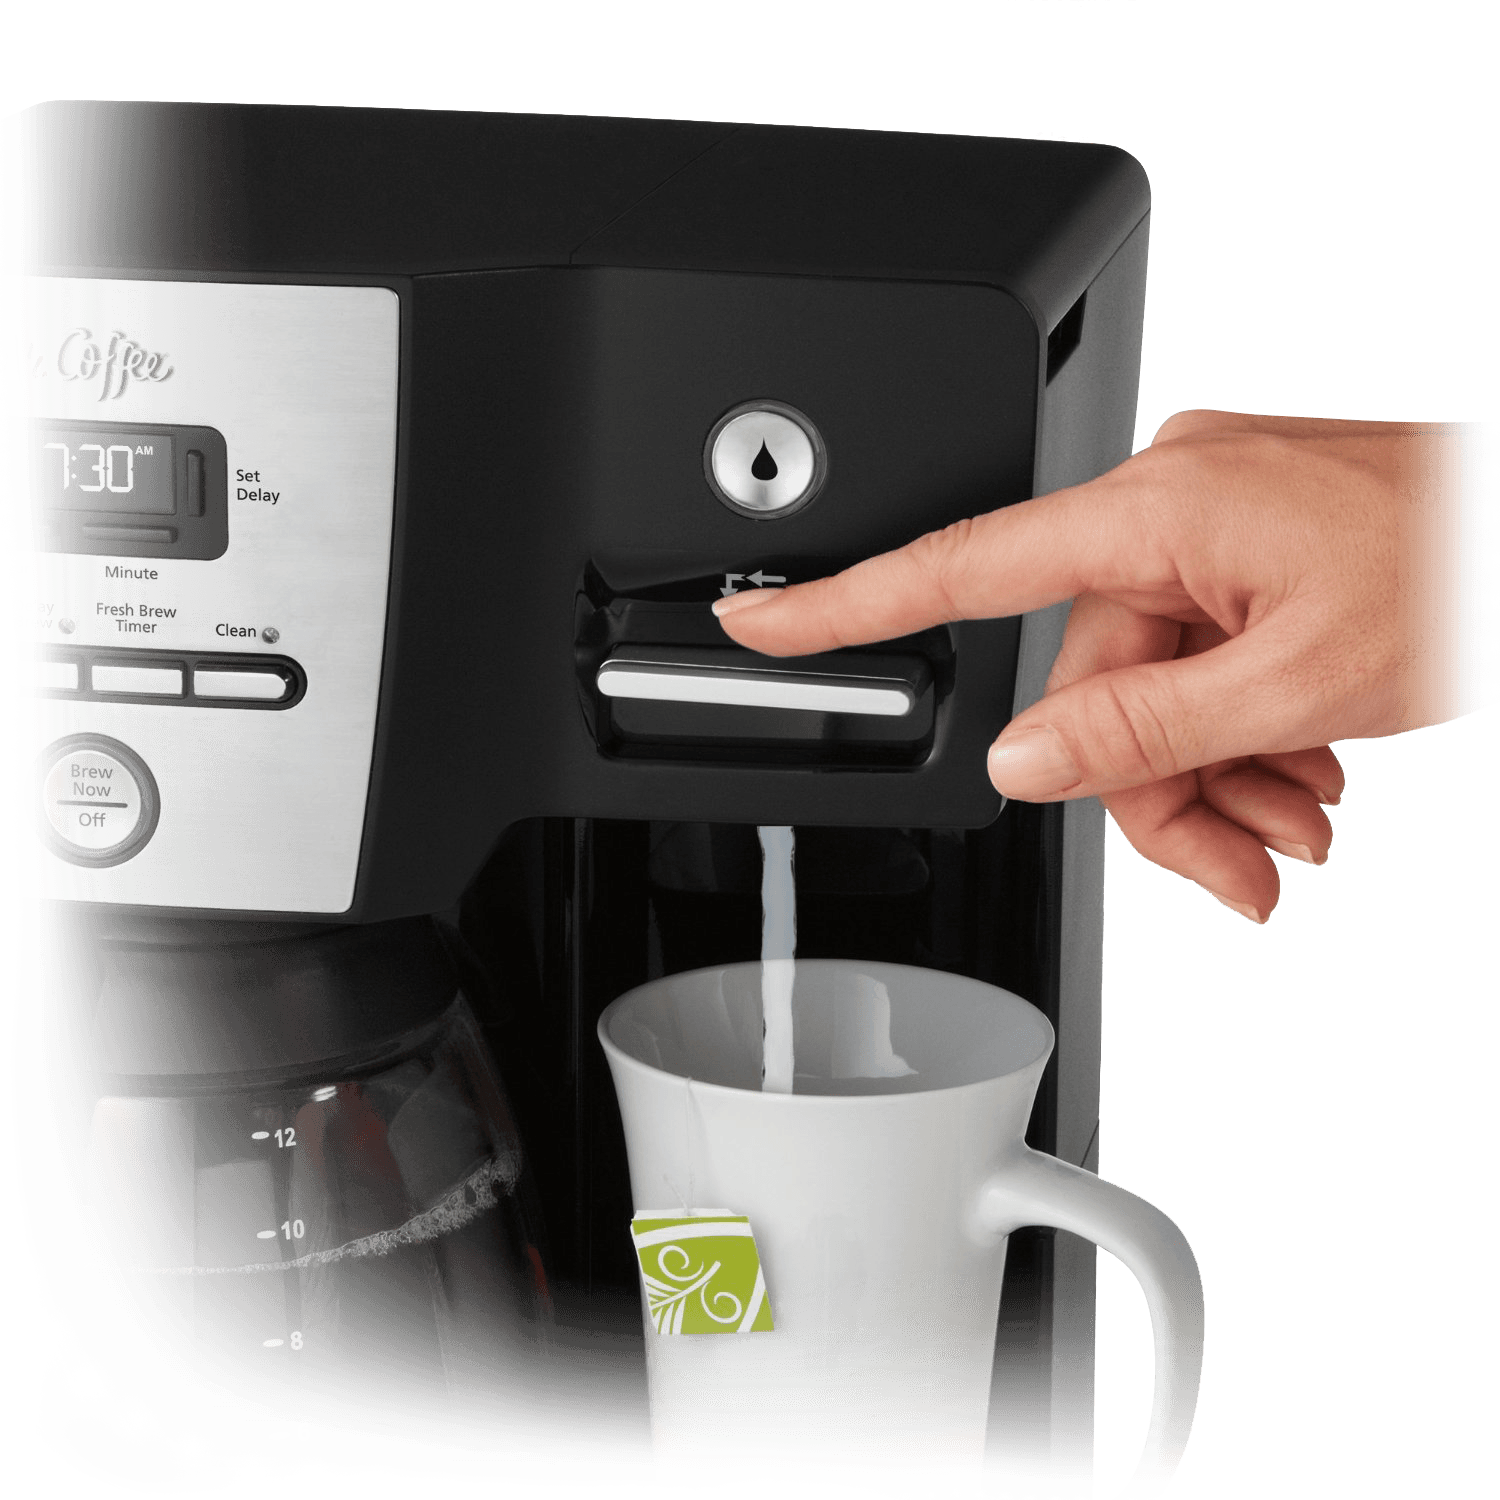 Mr. Coffee Versatile Brew Coffee Maker and Hot Water Dispenser (Refurbished)